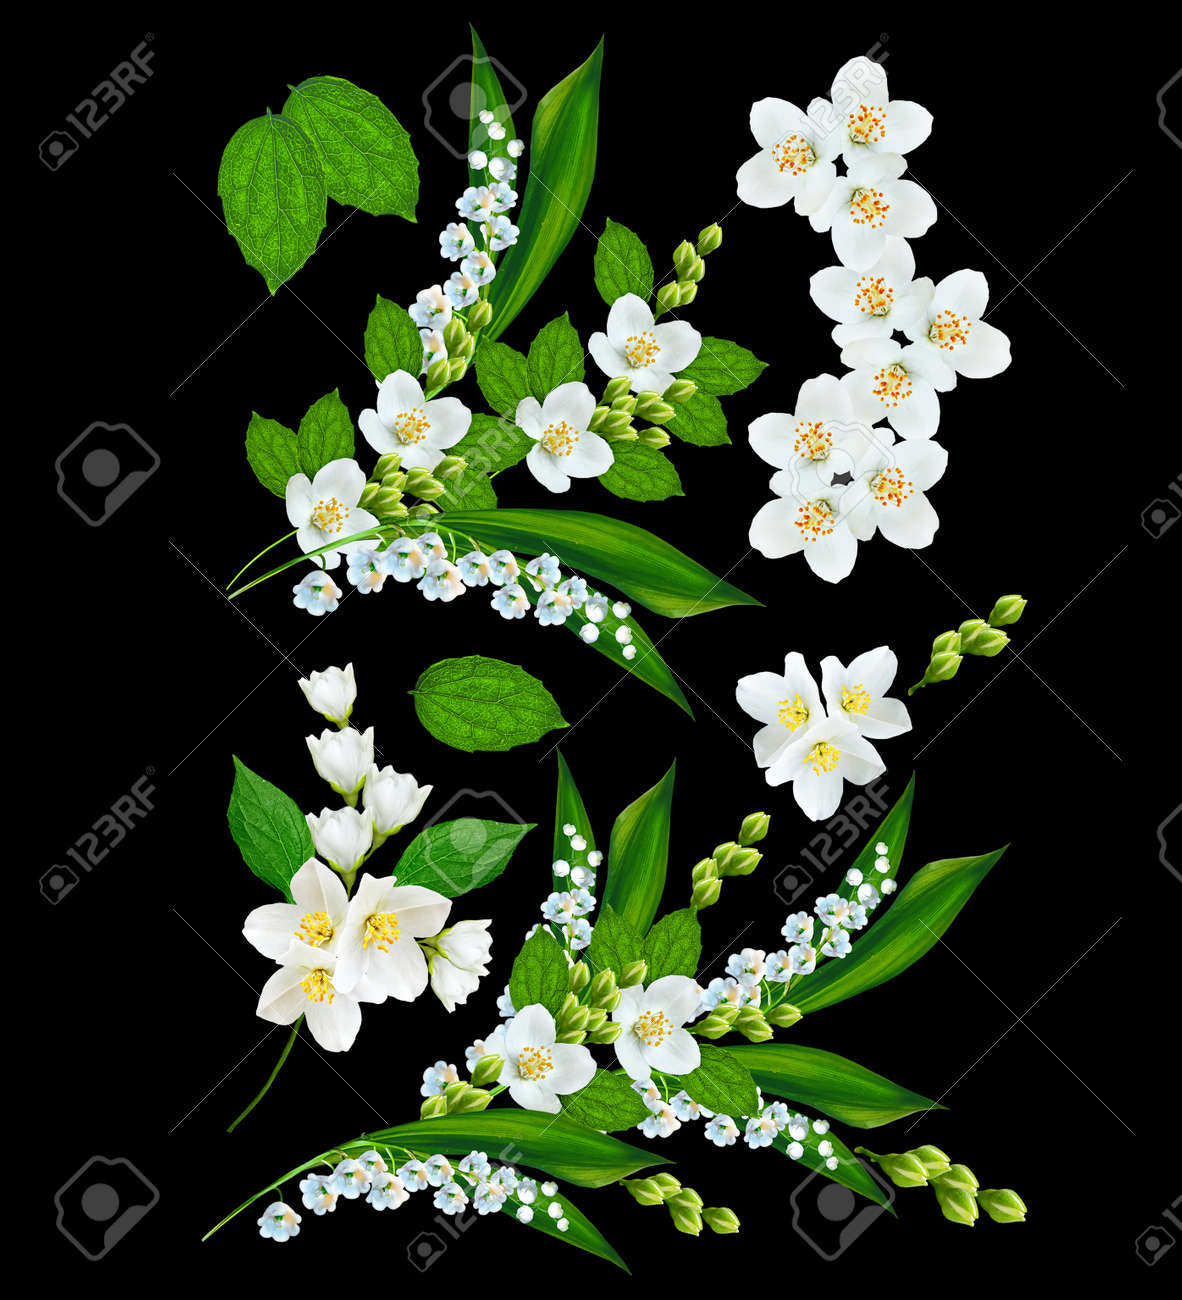 Branch Of Jasmine Flowers Isolated On Black Background Stock Photo